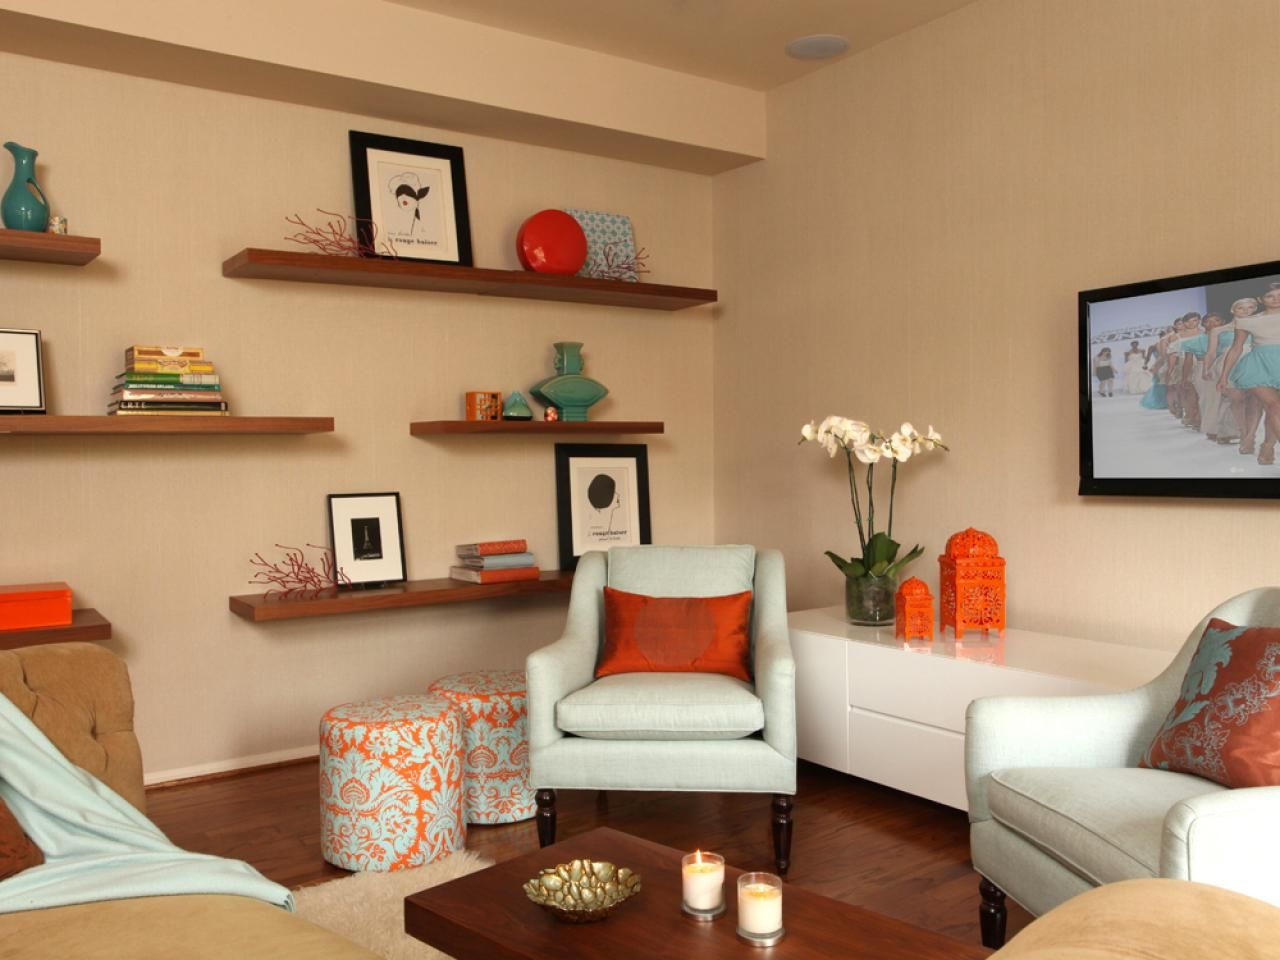 10 Apartment Decorating Ideas | Desk areas, Small apartments and ...